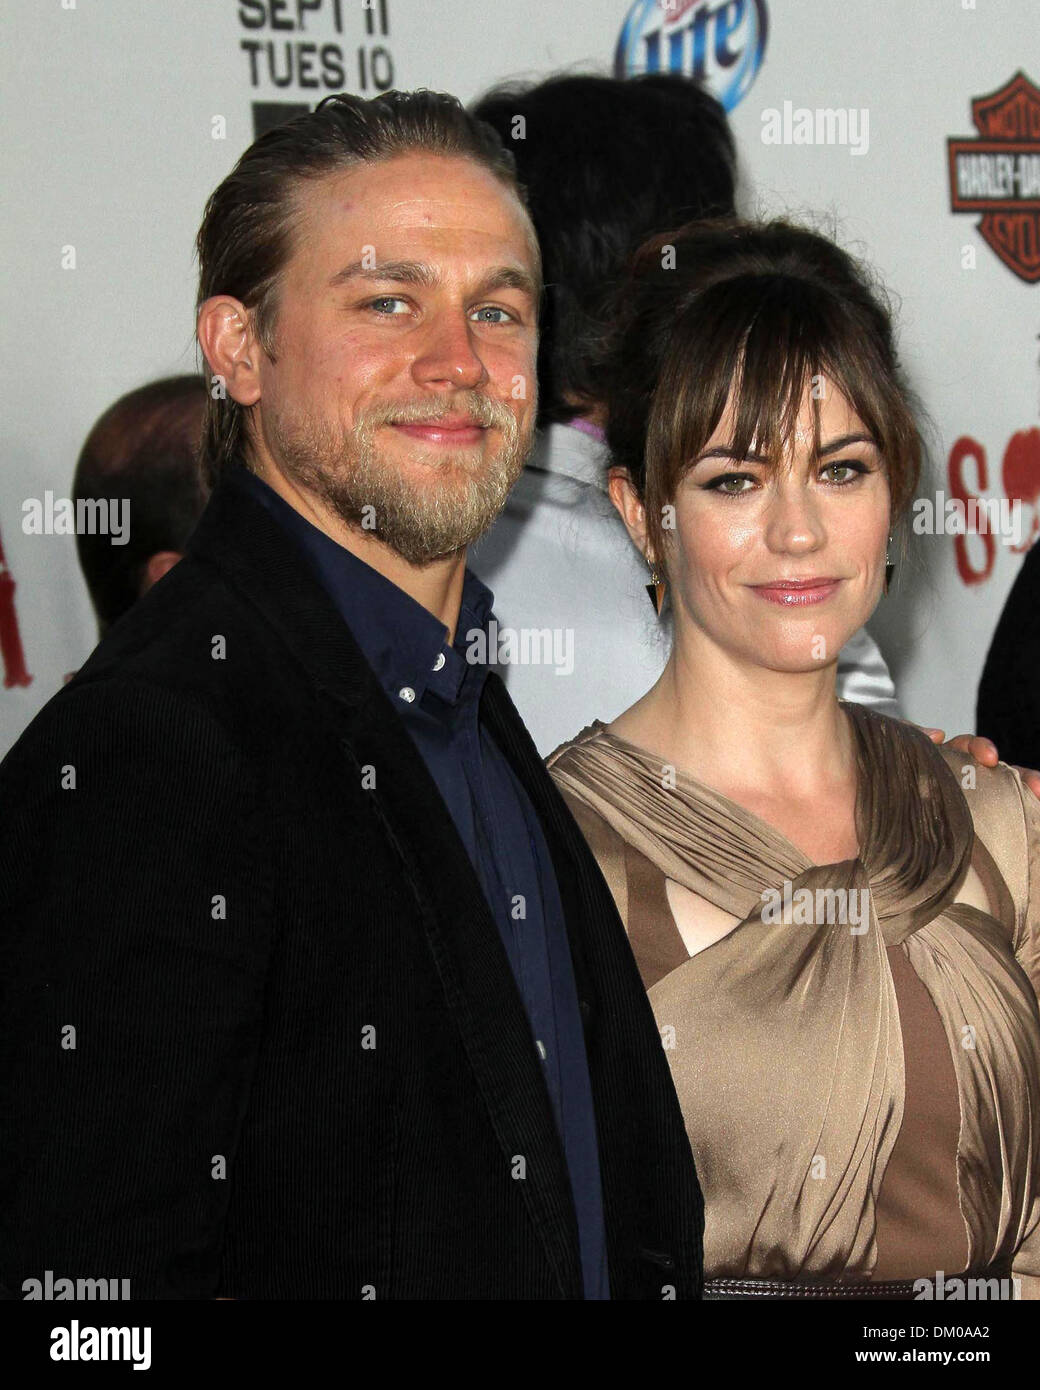 who is maggie siff dating